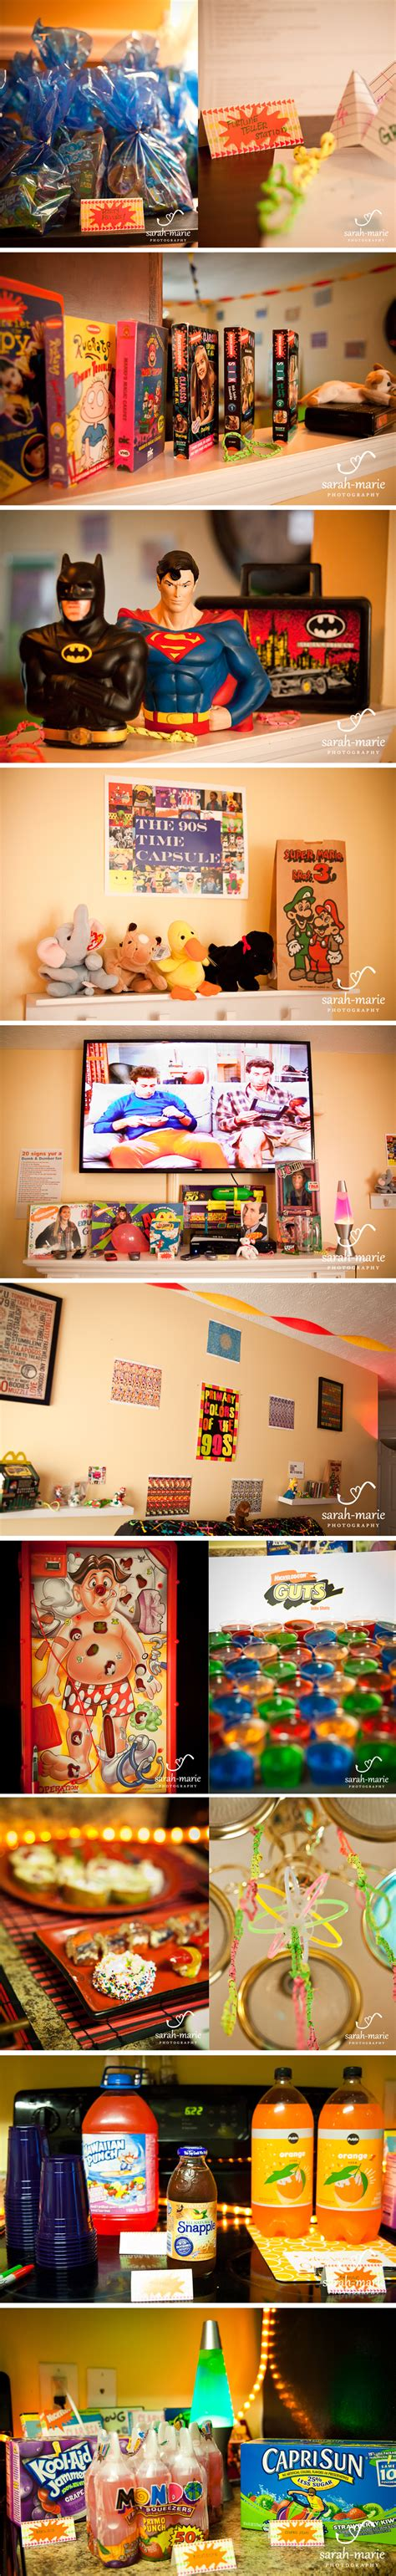 90s decor how to plan a 90s food and decor ideas 187 photography